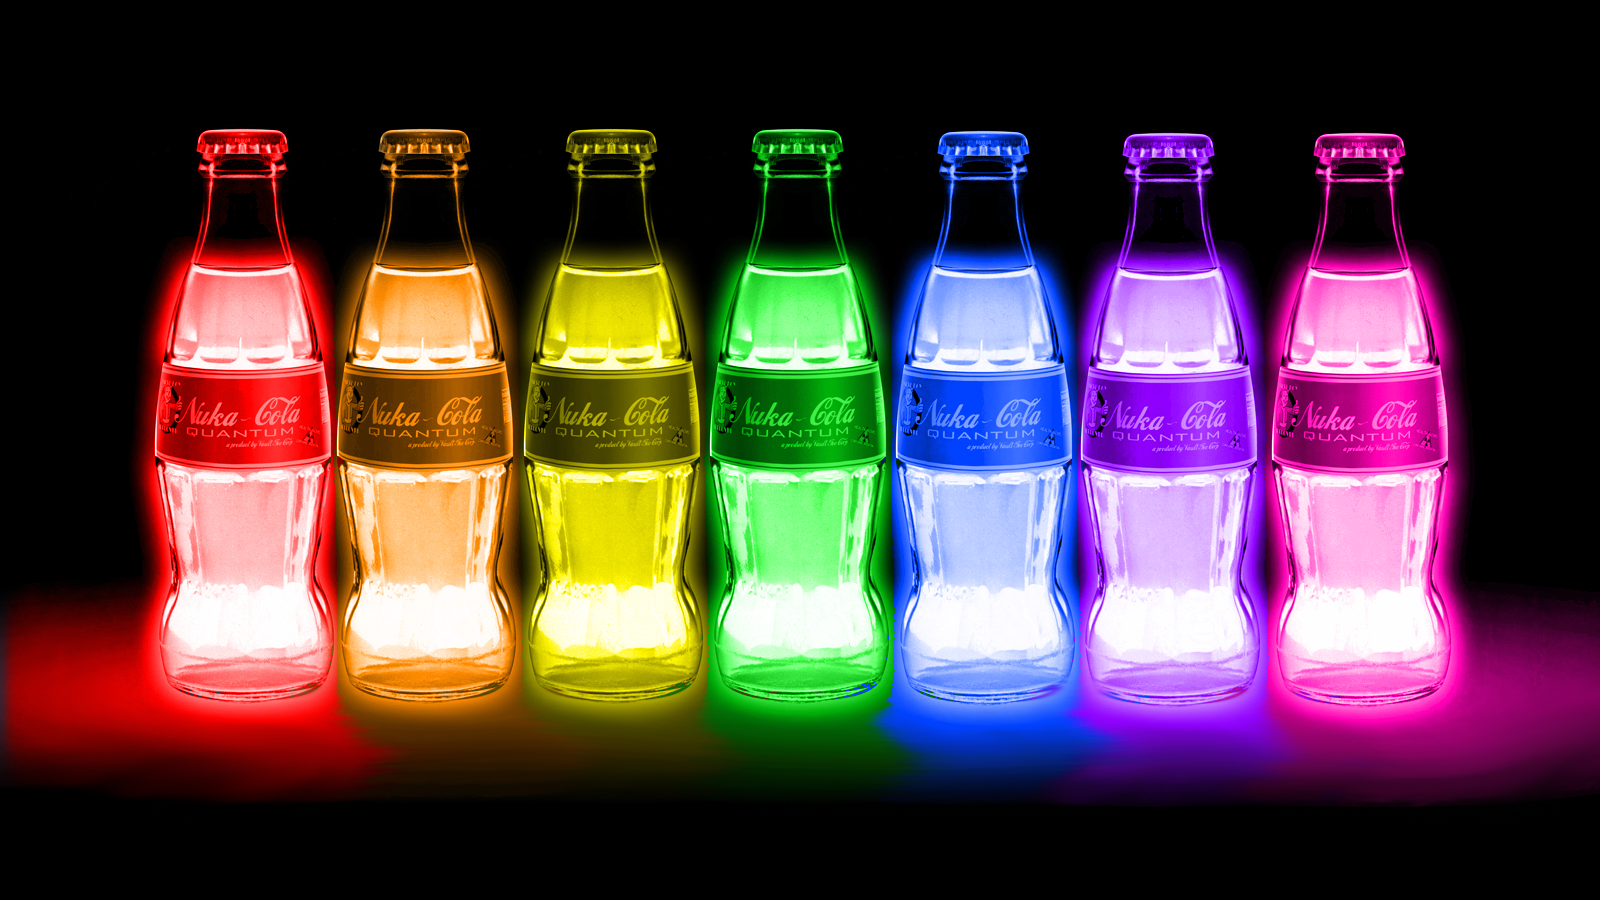 FALLOUT Drink Nuclear Radiation Color Glow Neon Wallpaper 1600x900 153077 WallpaperUP